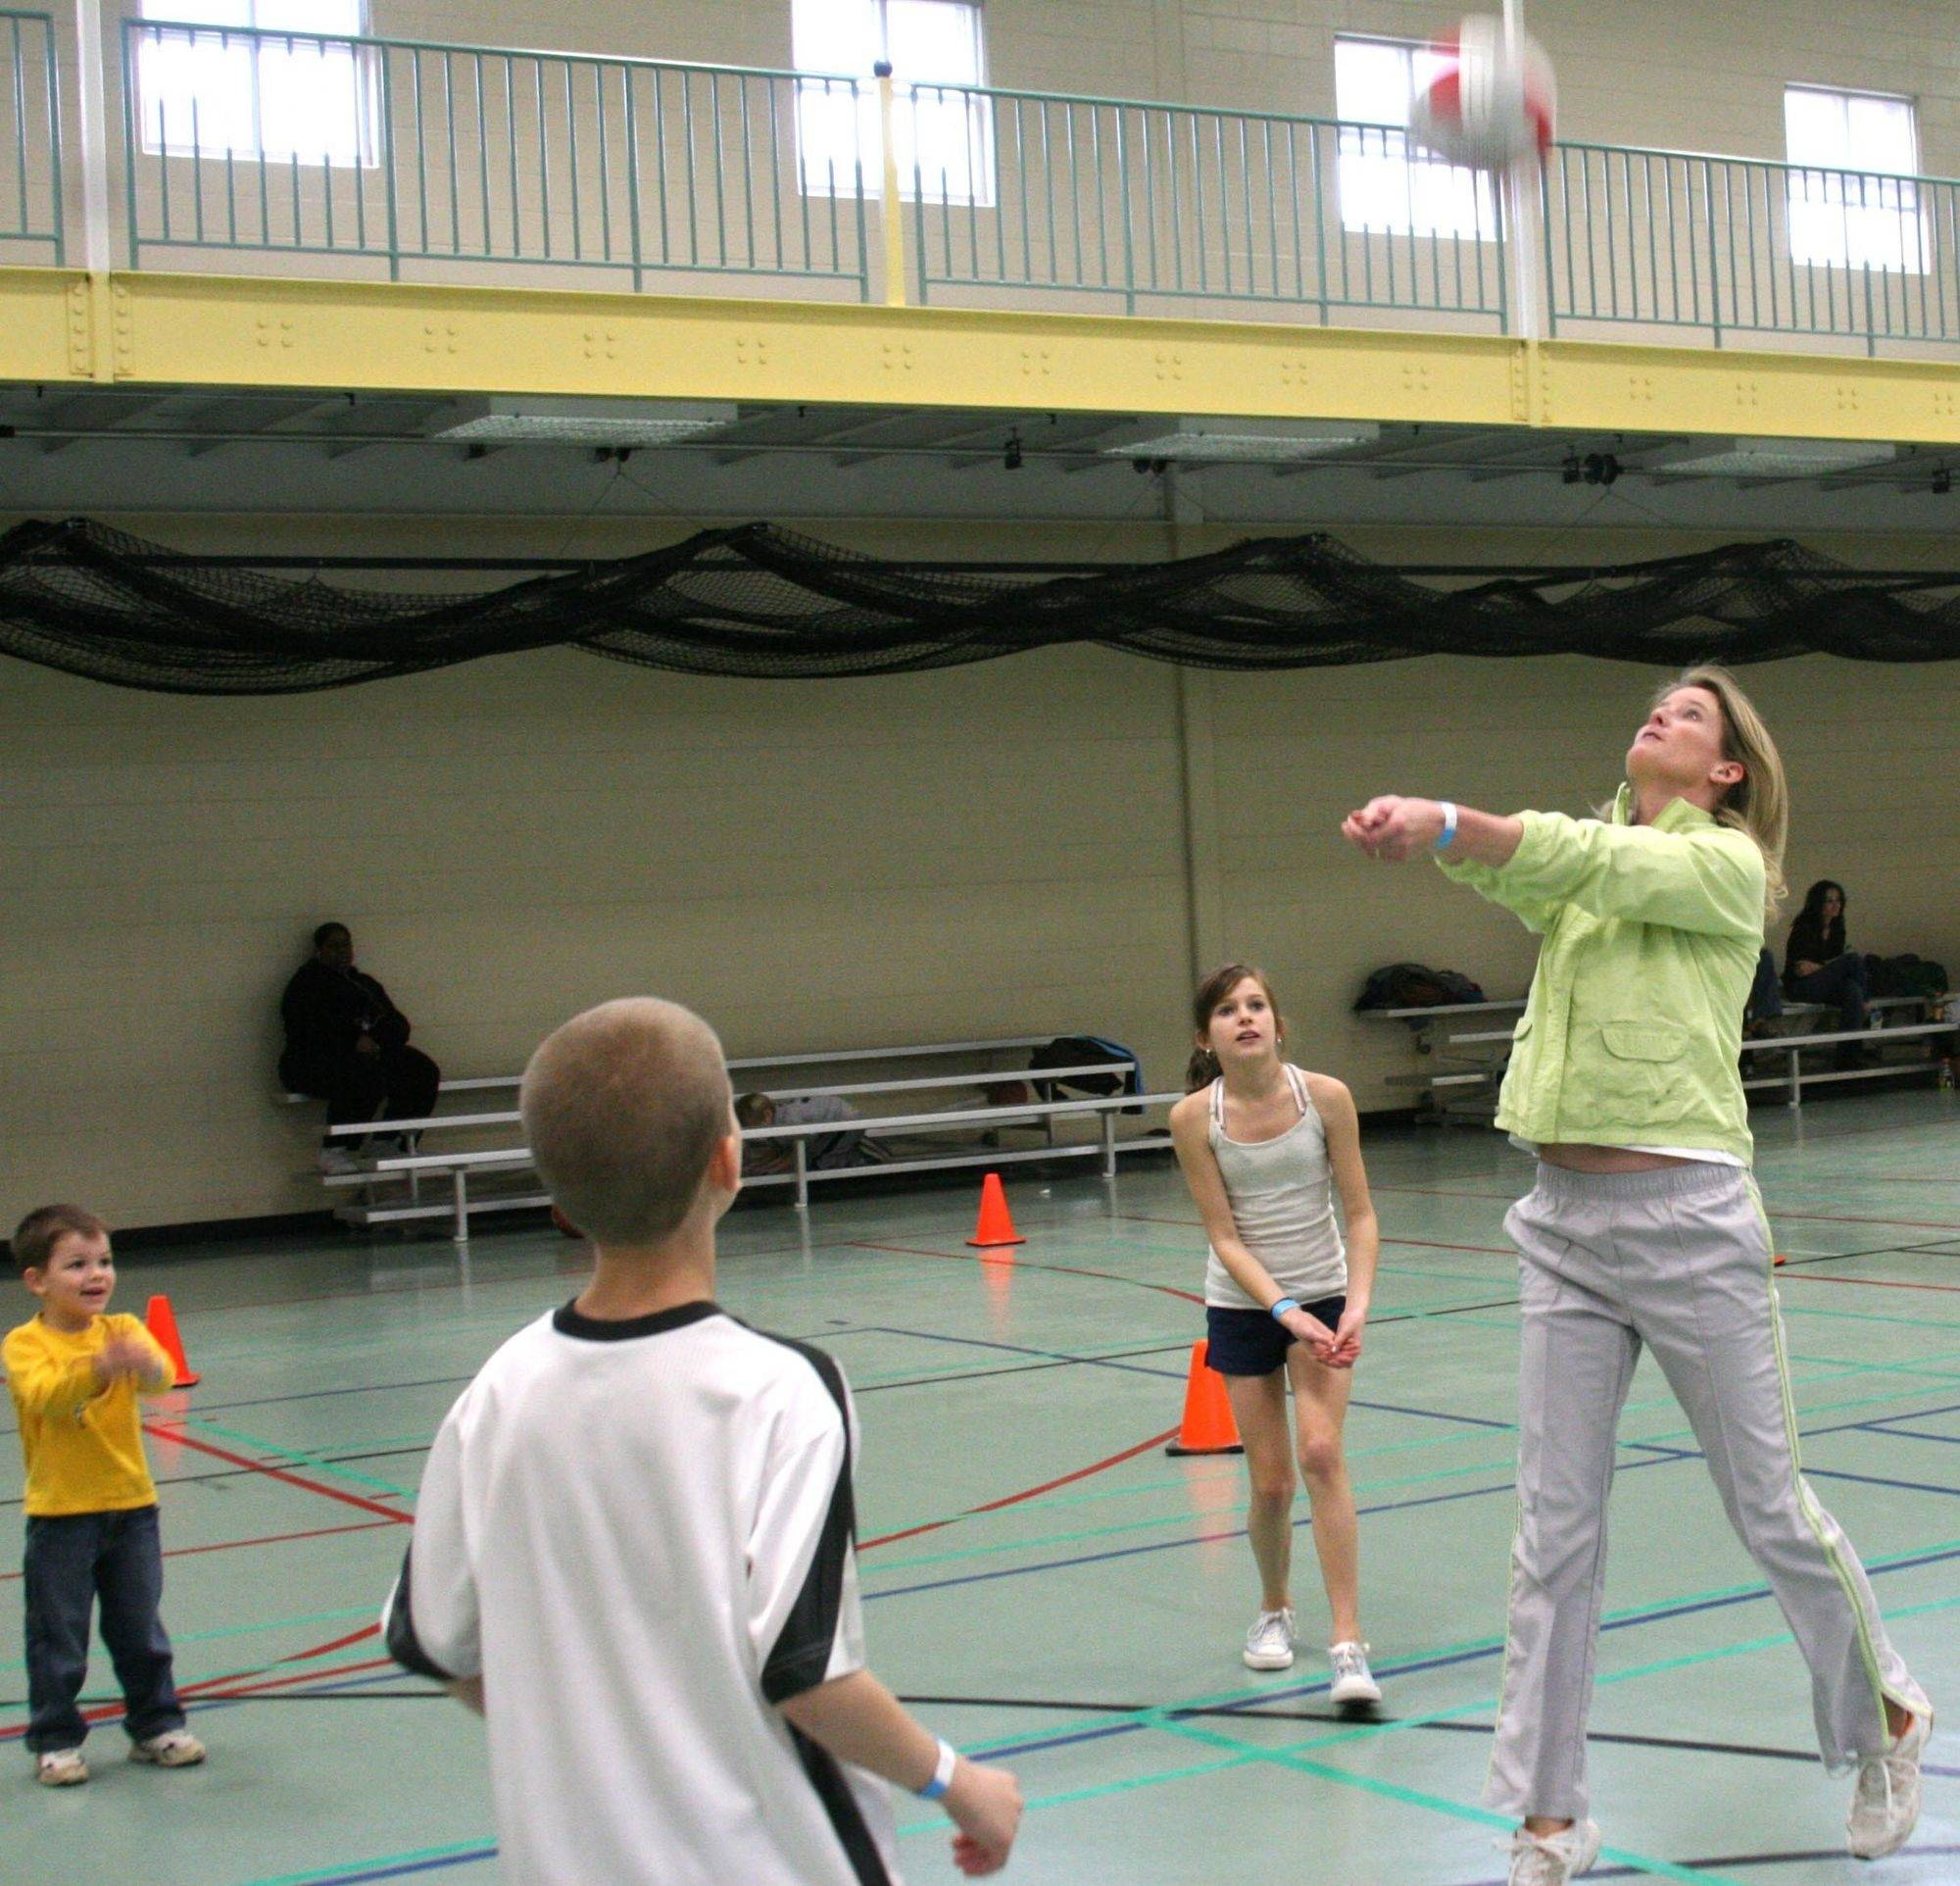 Karin Myre, right, provides a demonstration of the bump for aspiring volleyball players Benjamin Schwieger, Daniel Schwieger, back, and Stephanie Schwieger during a recent family open gym at the Eola Community Center.